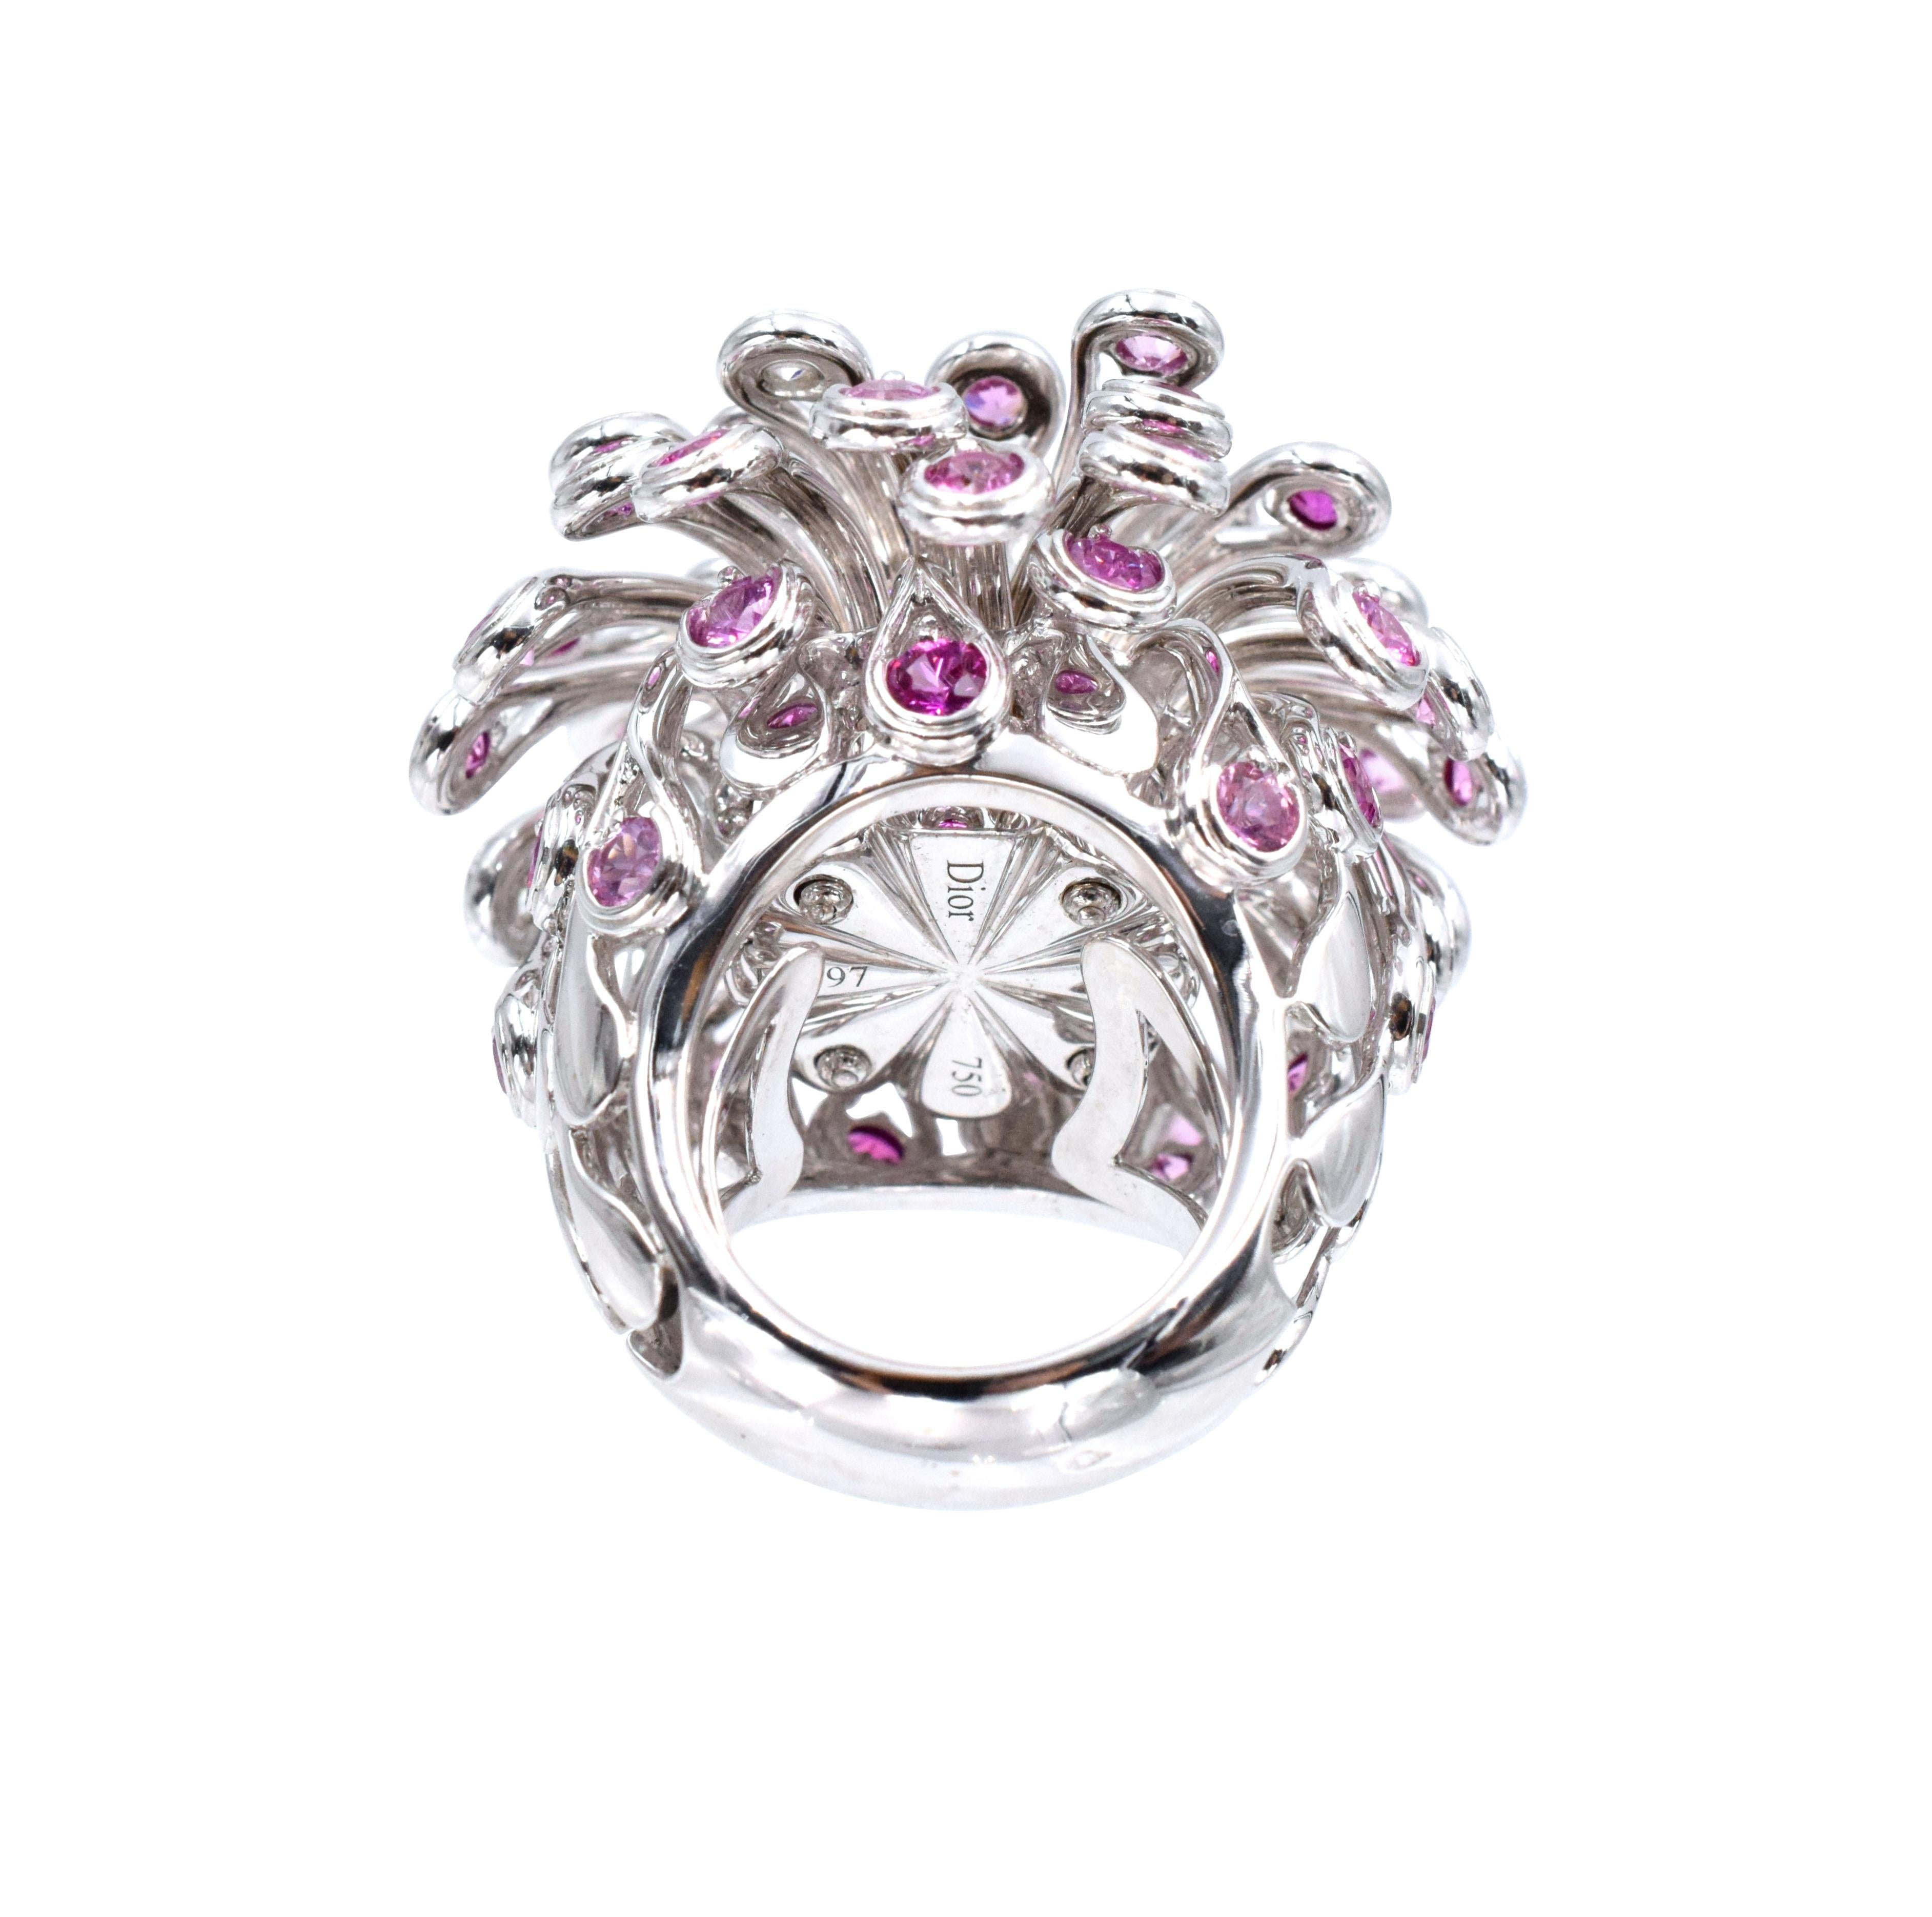 Christian Dior Diamond and Pink Sapphire Ring For Sale at 1stdibs